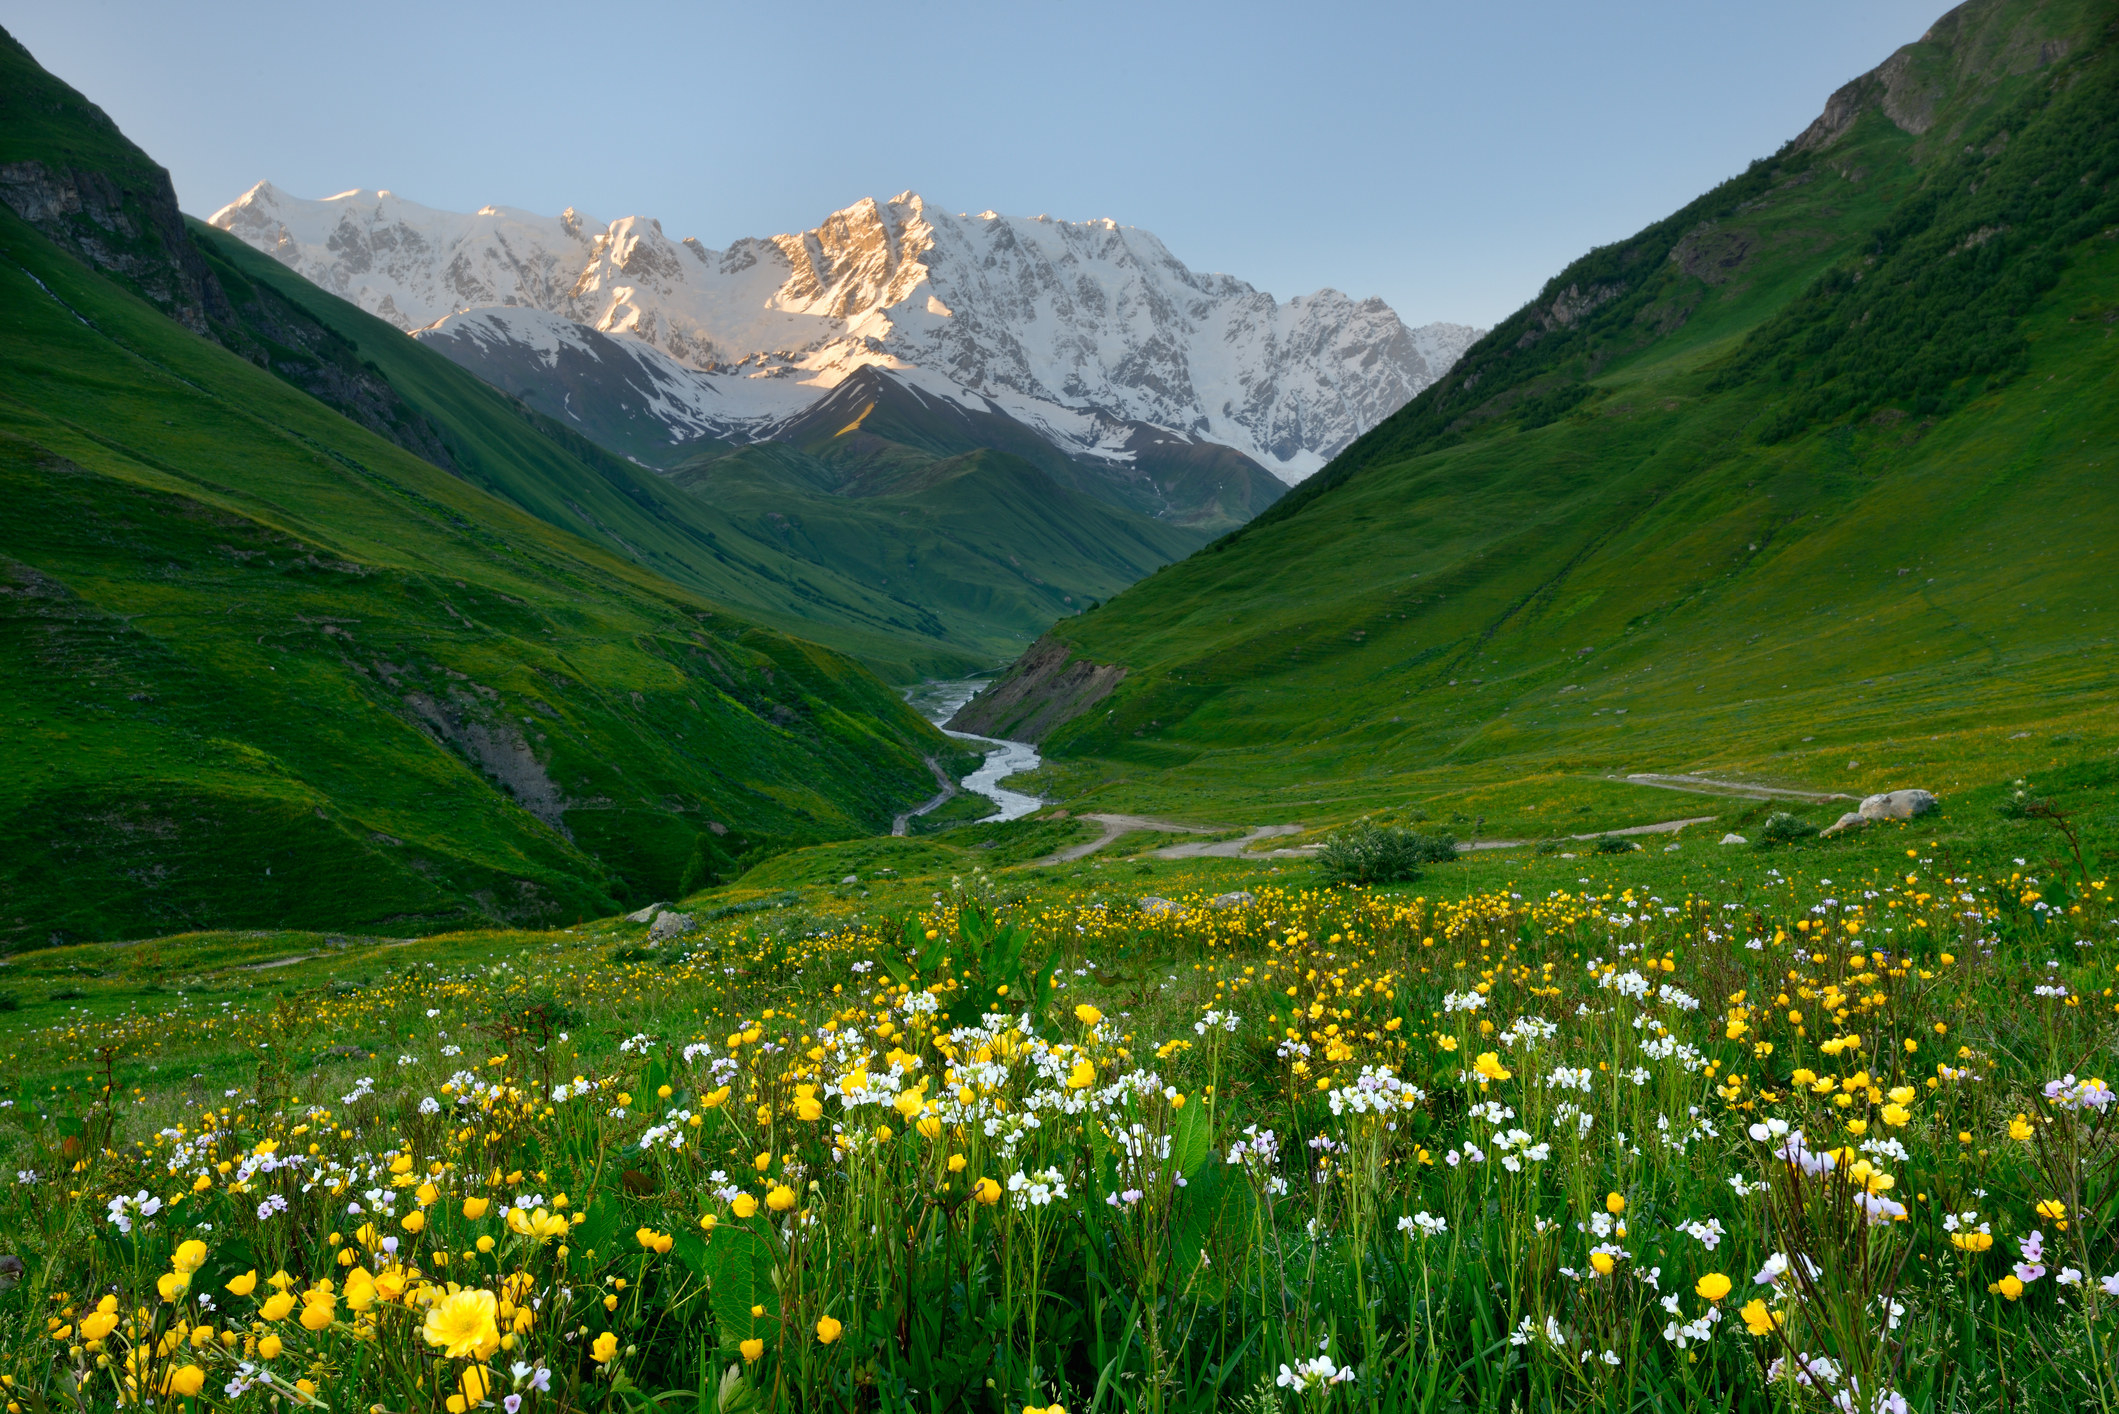 A meadow and mountains in Svaneti, Georgia.